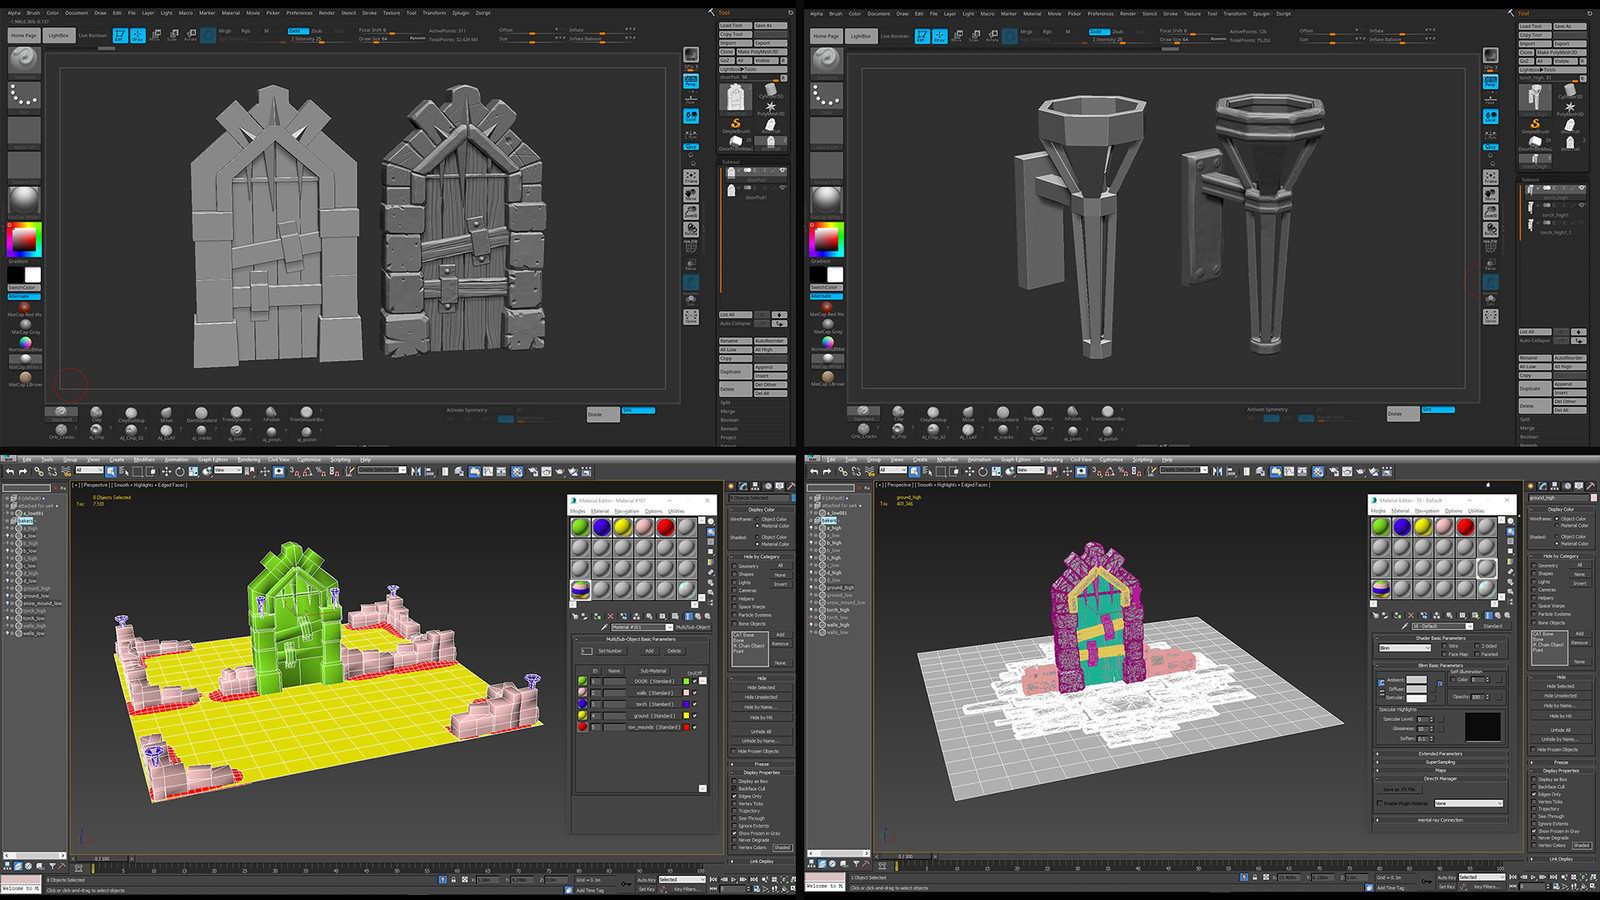 Zbrush sculpts and 3dsMax layout for scene export to Substance Painter.